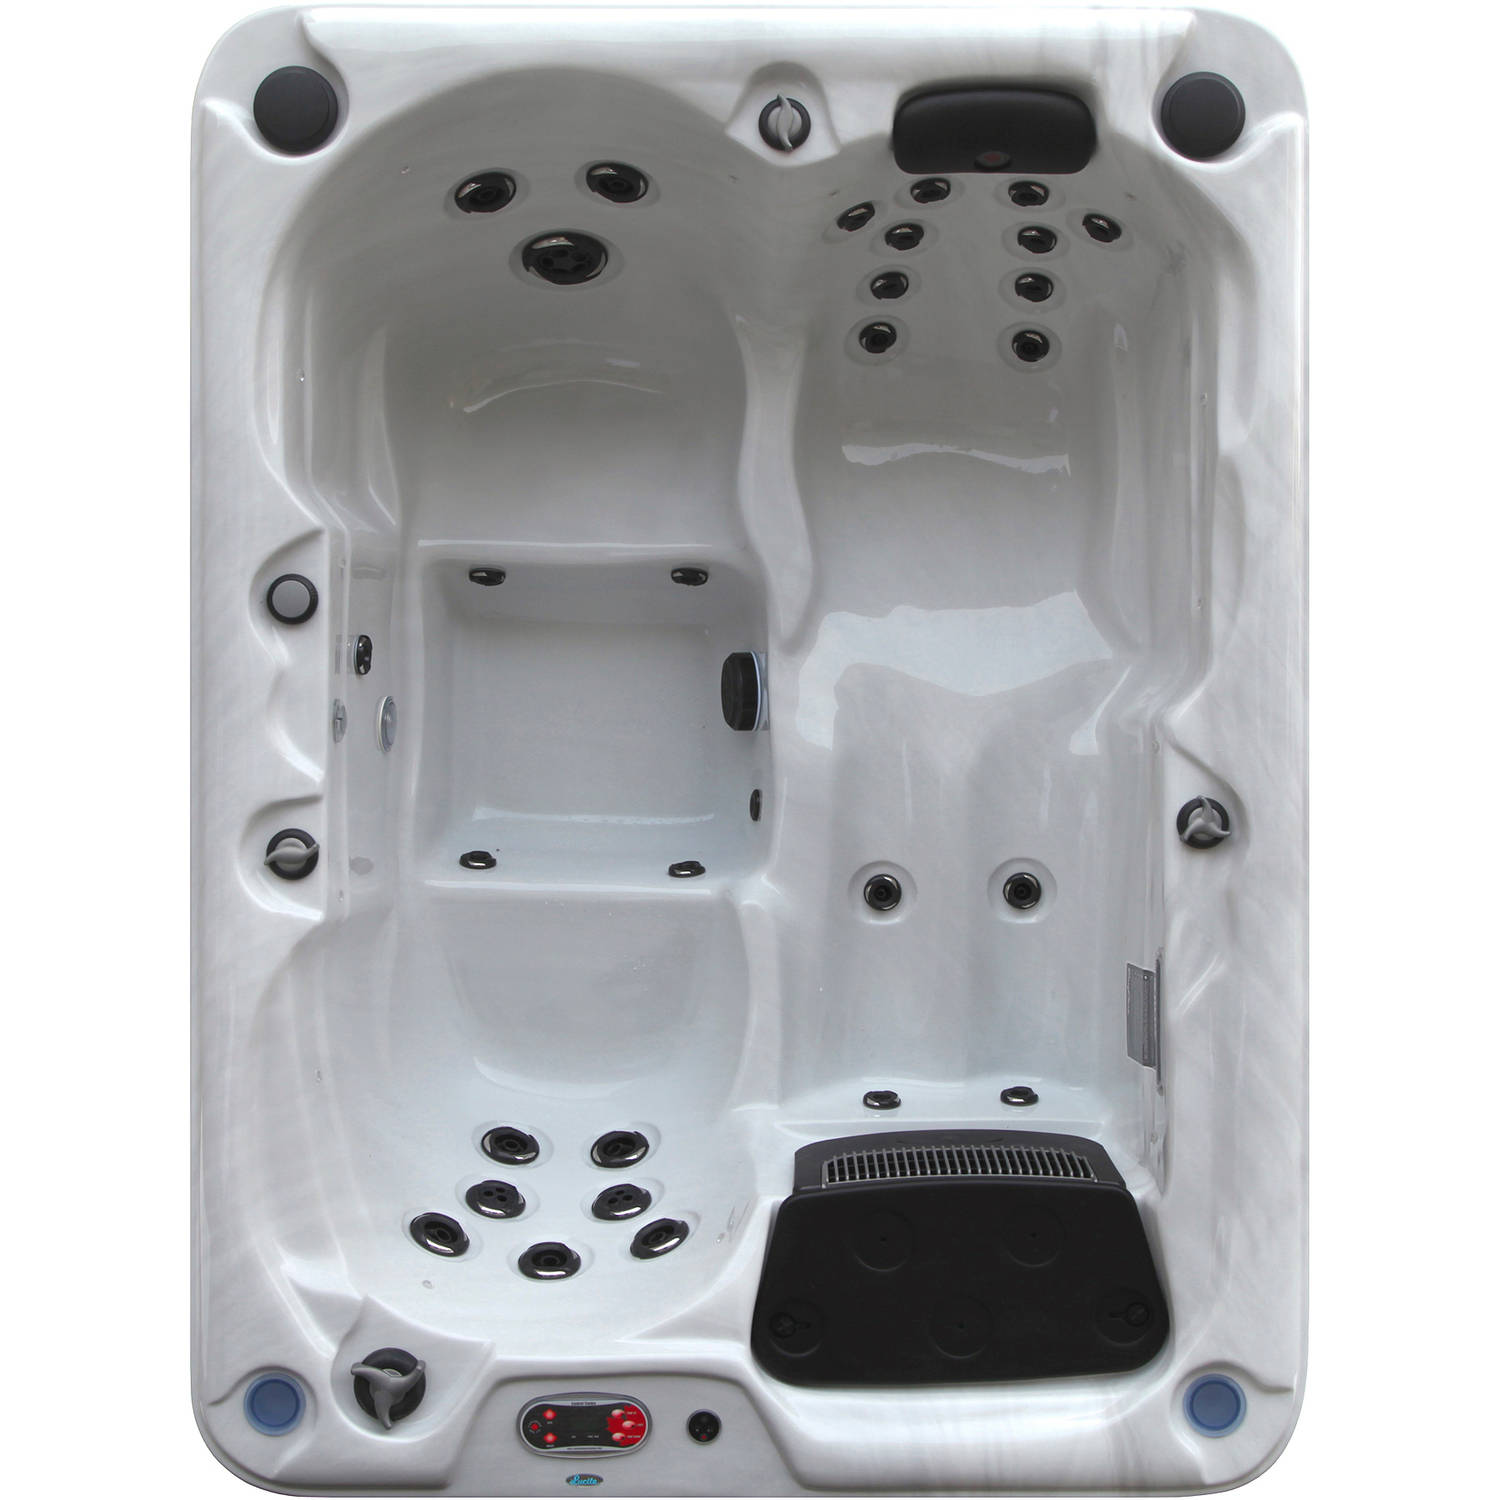 Canadian Spa Co. Quebec Plug & Play 29-Jet 3 Person Spa by Hot Tubs